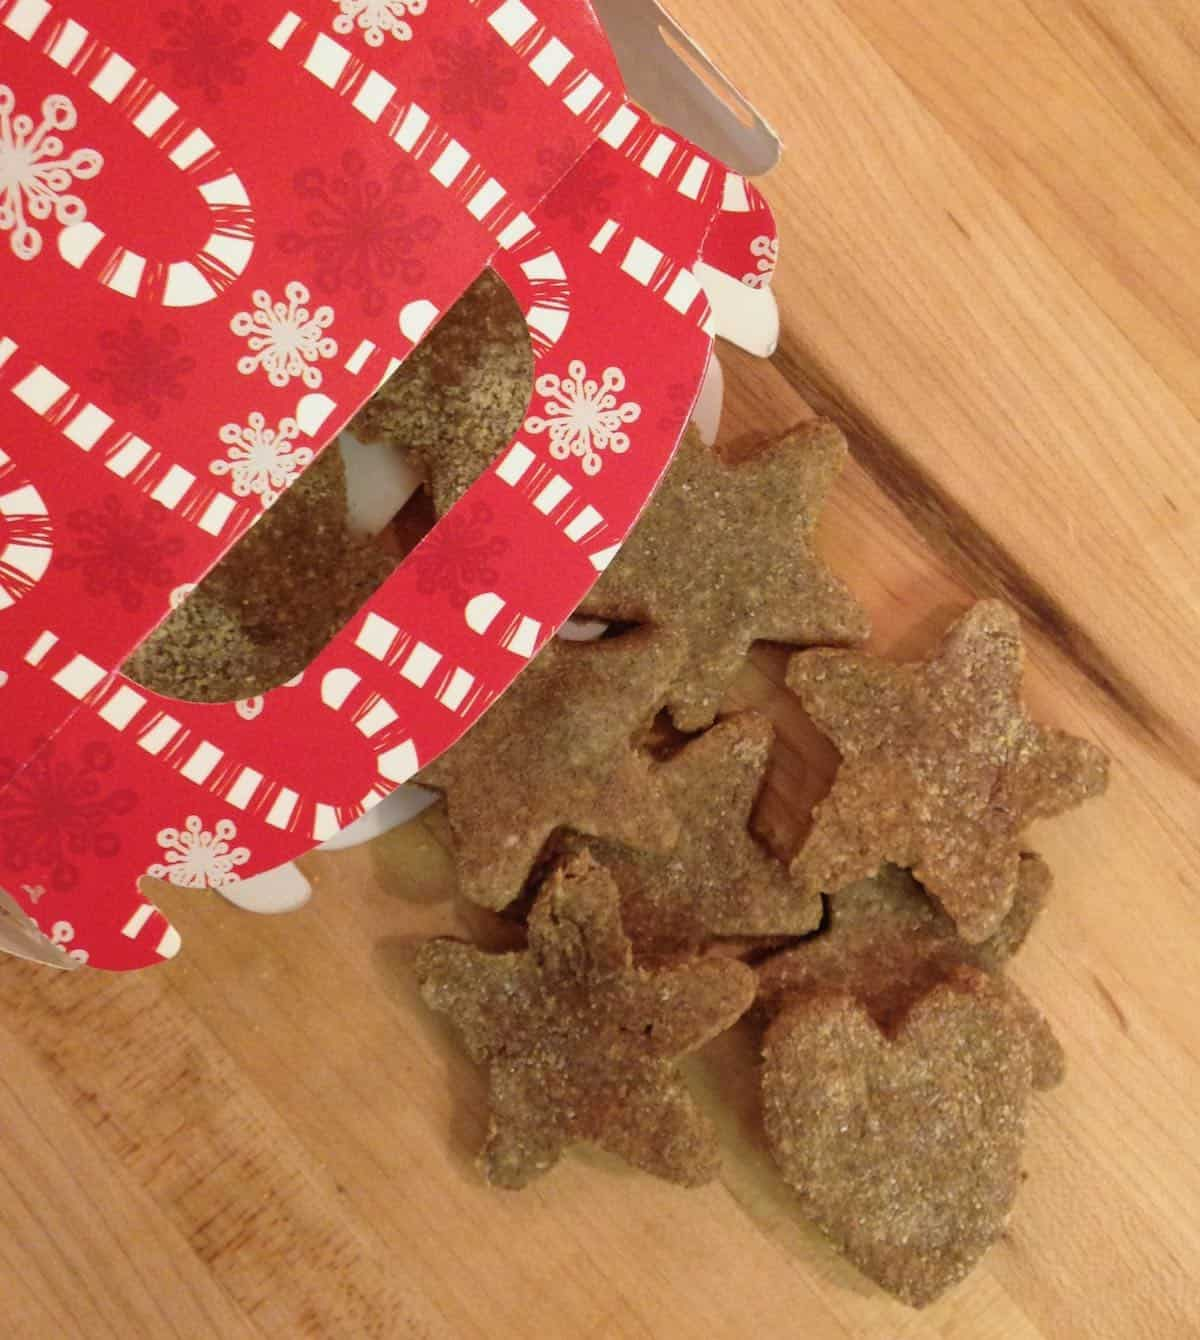 grain-free dog biscuits shaped liked stars in a Christmas bag